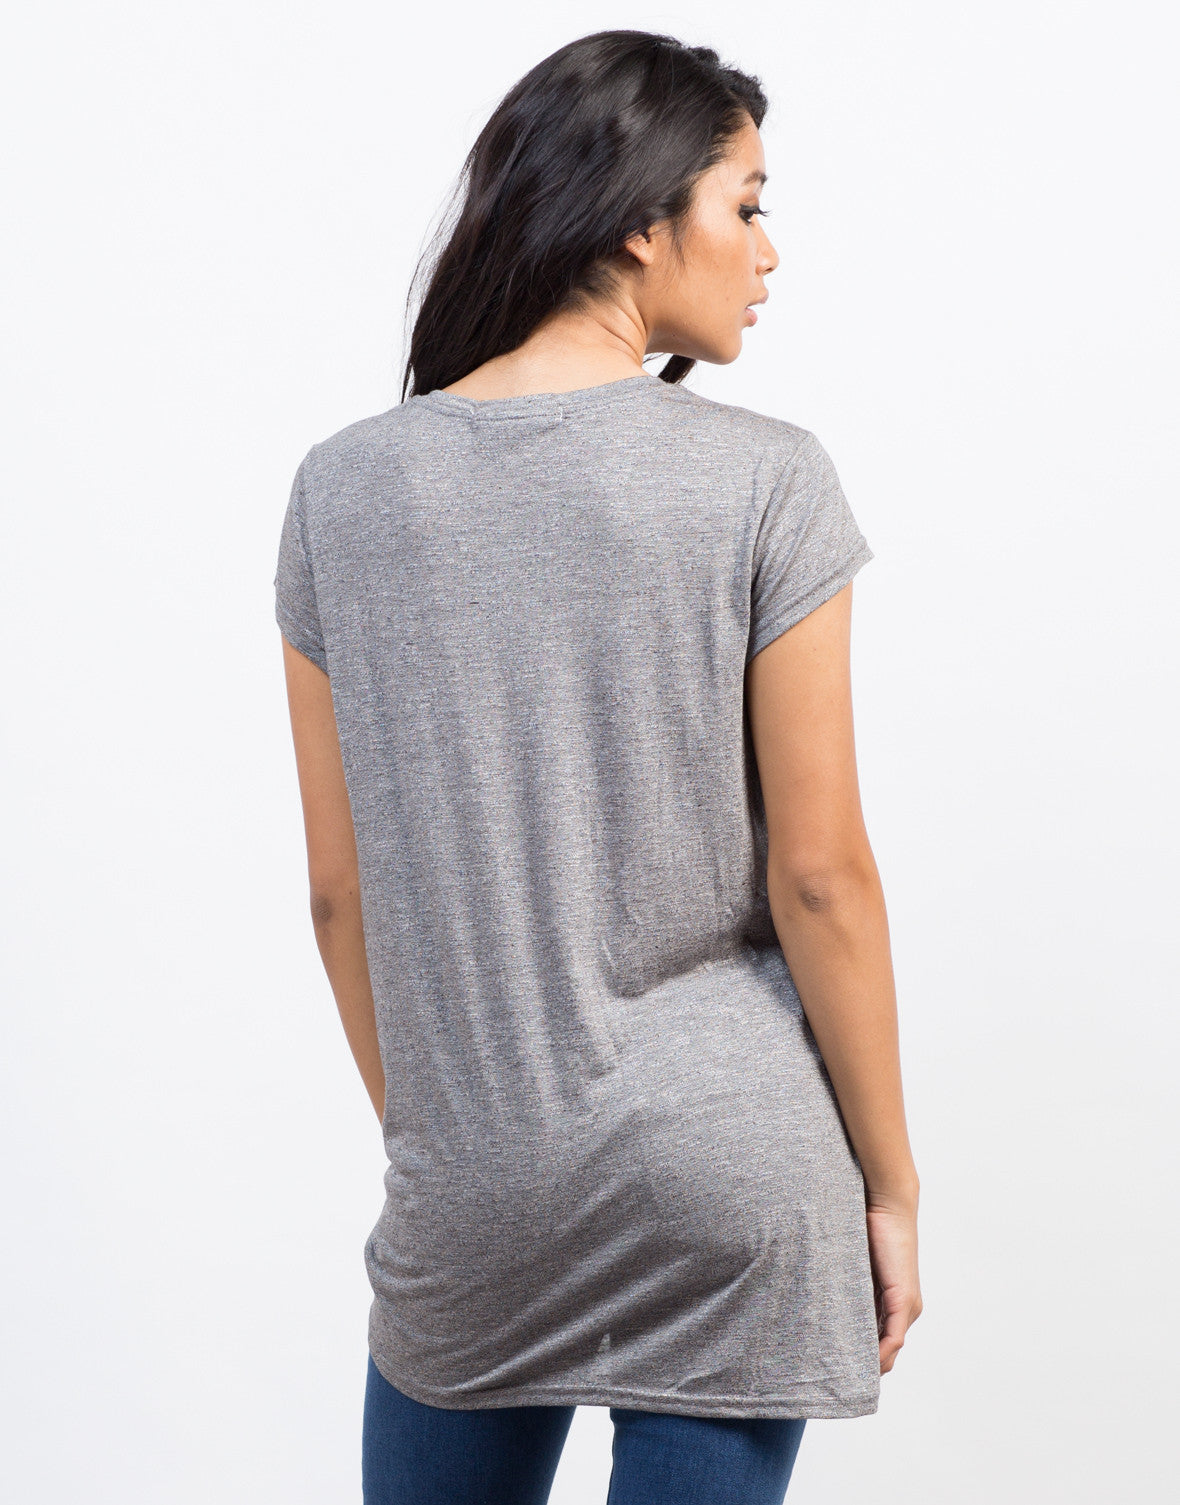 Back View of Knotted Tunic Tee